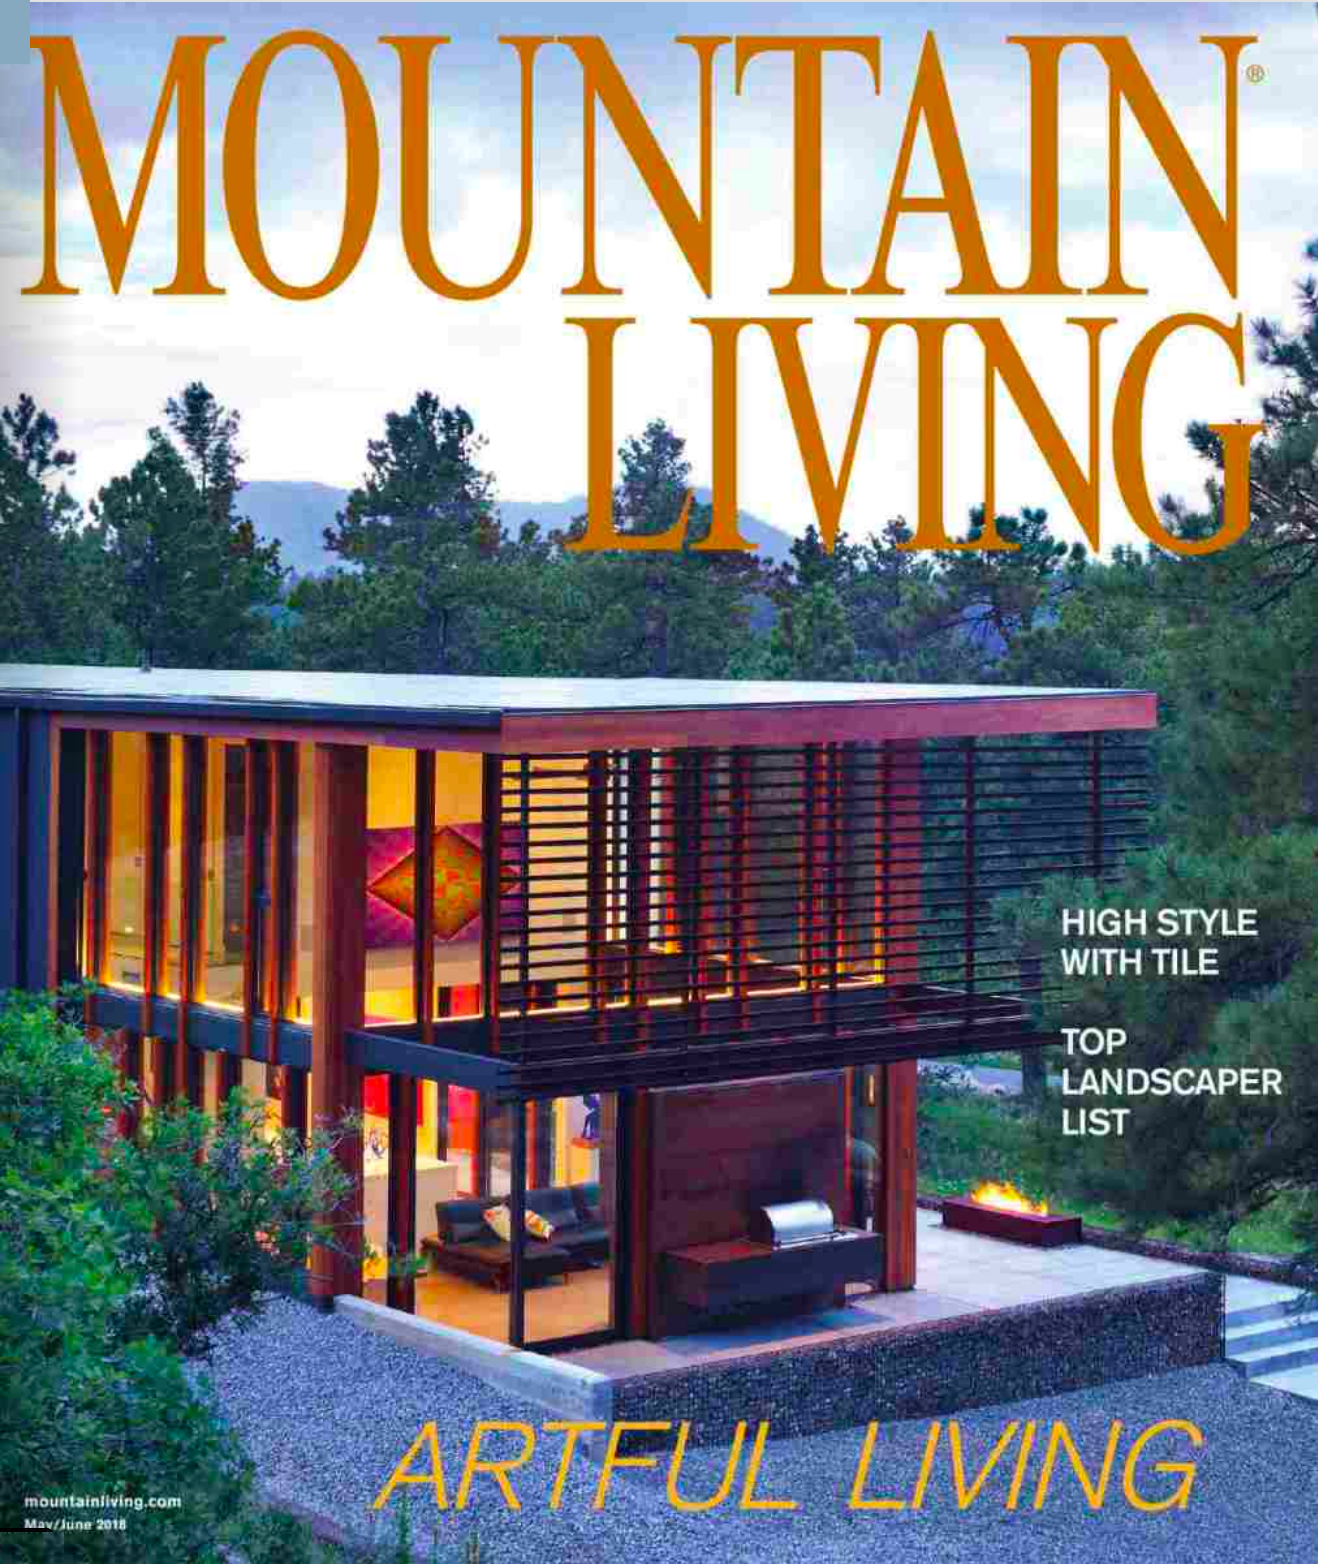 Mountain Living Magazine - Lake Tahoe SpotlightMay/June 2018 // Our firm was featured in the Lake Tahoe Spotlight in the Spring & Summer Mountain Living issue.